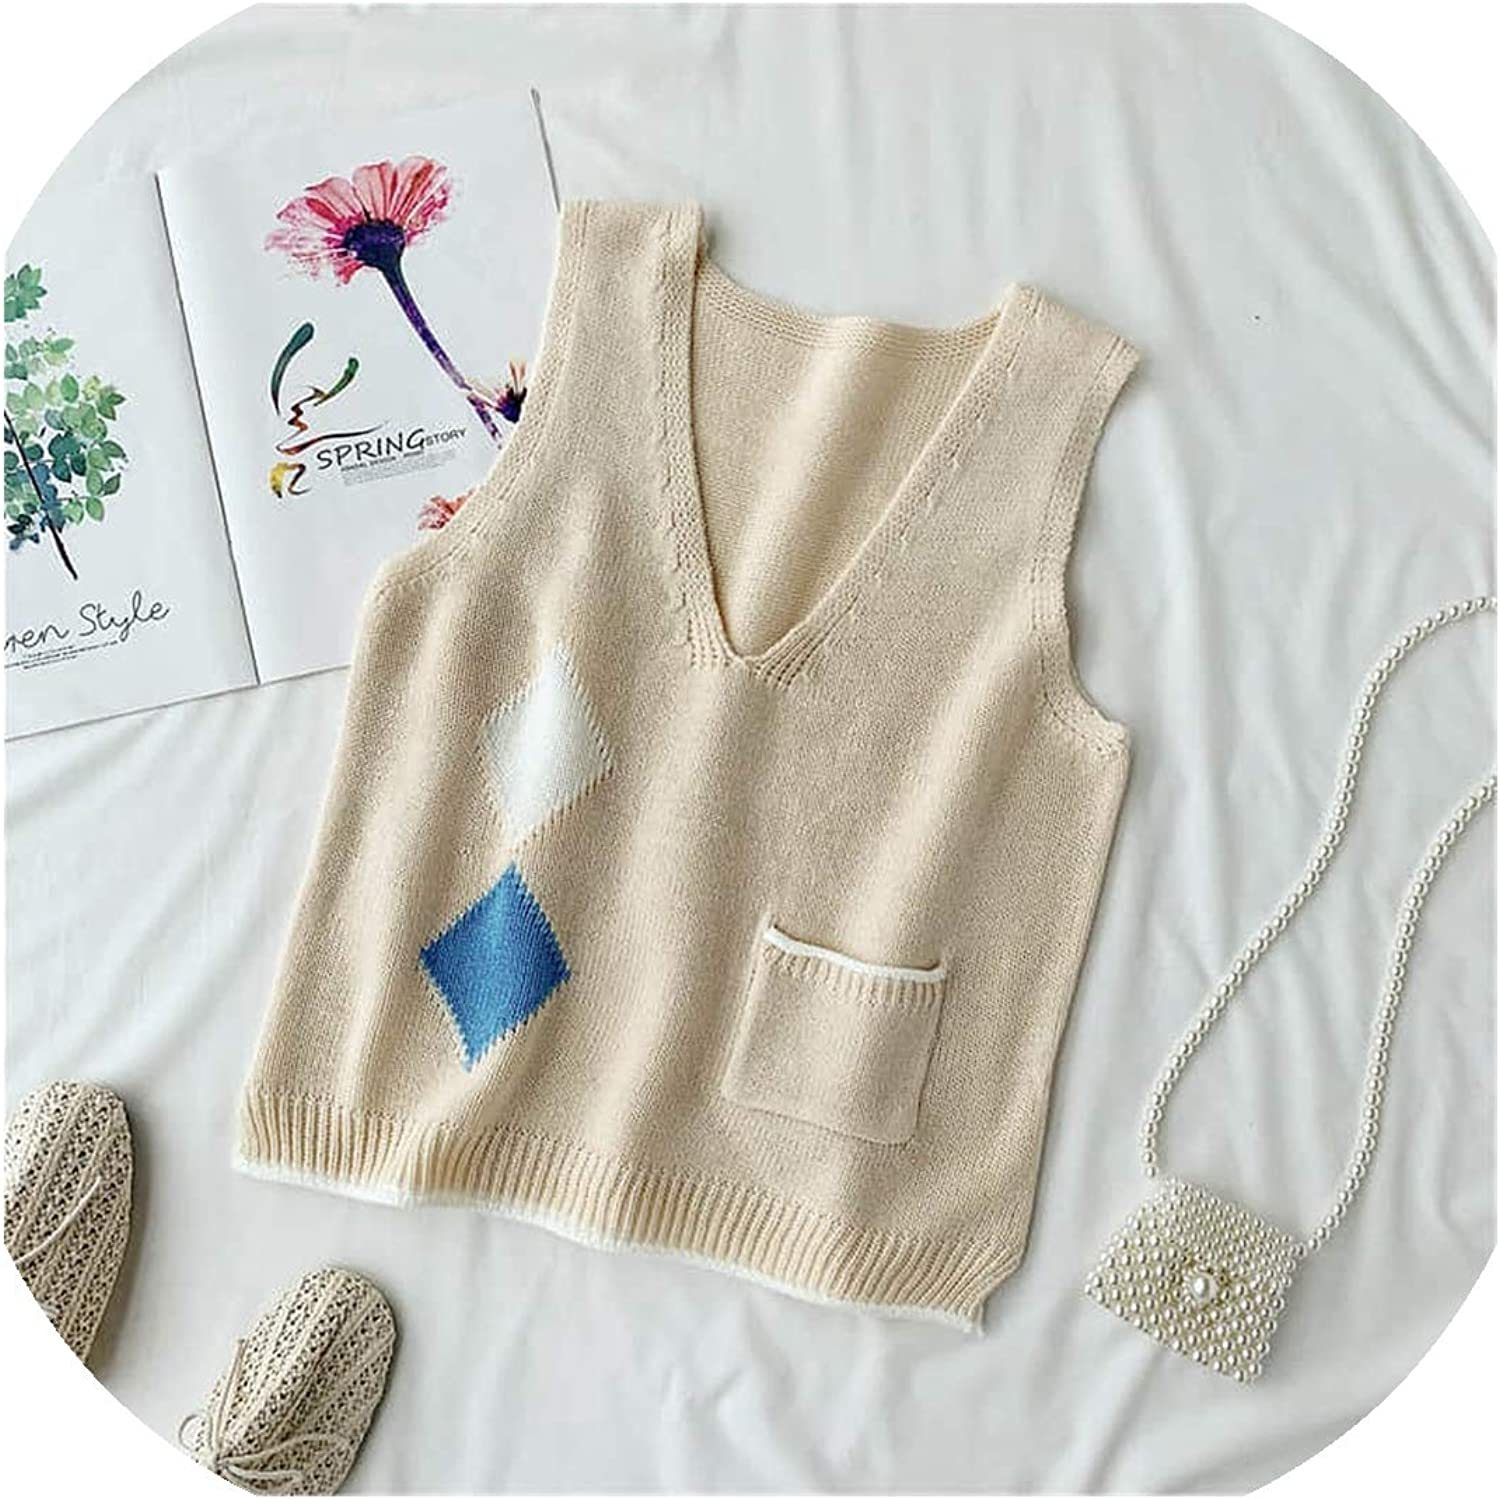 2019 Autumn Fashion Patchwork Knitting Vest Women Sleeveless